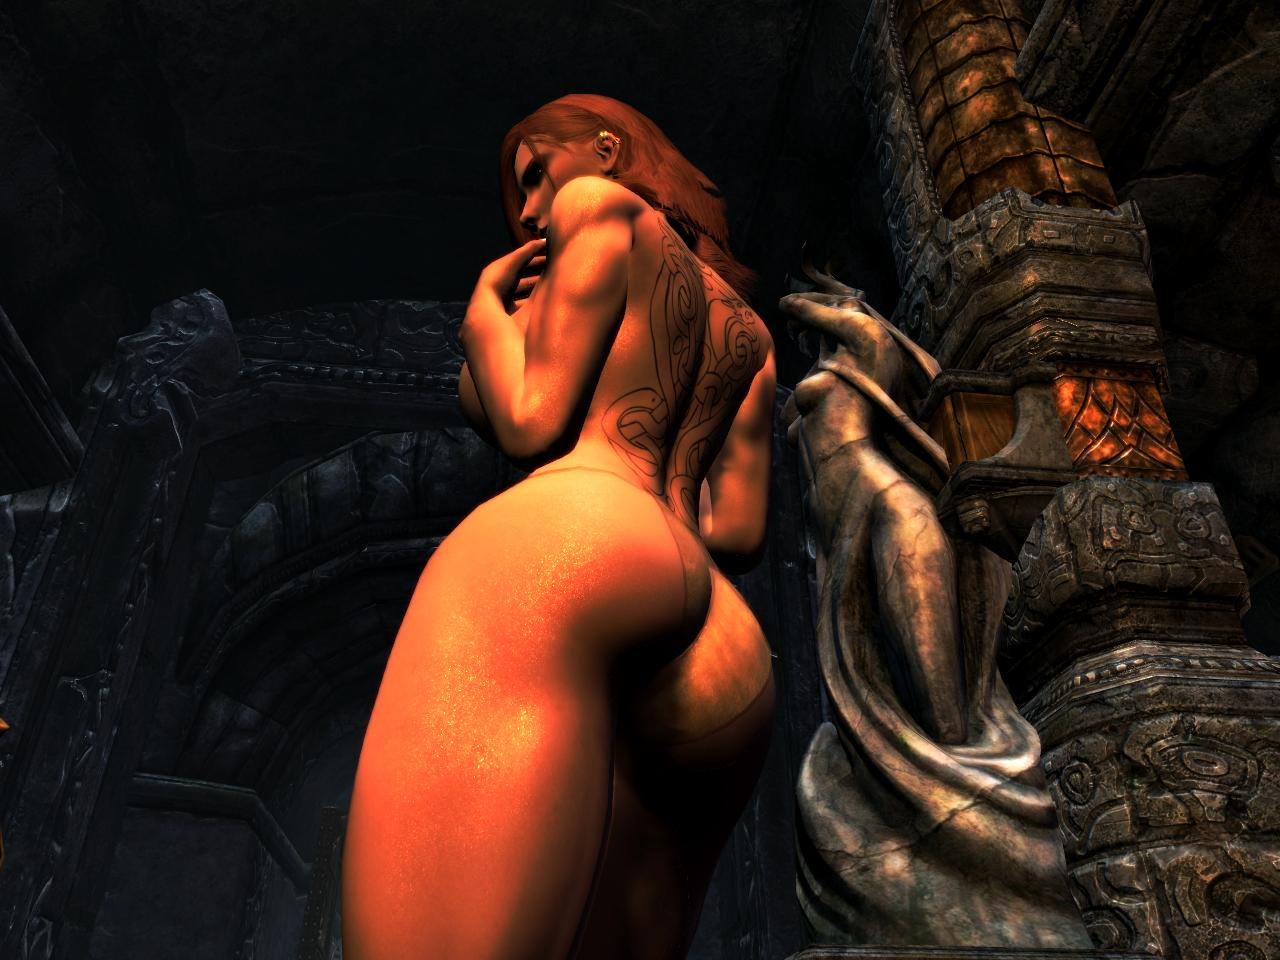 Skyrim nude mod big boobs erotic photo